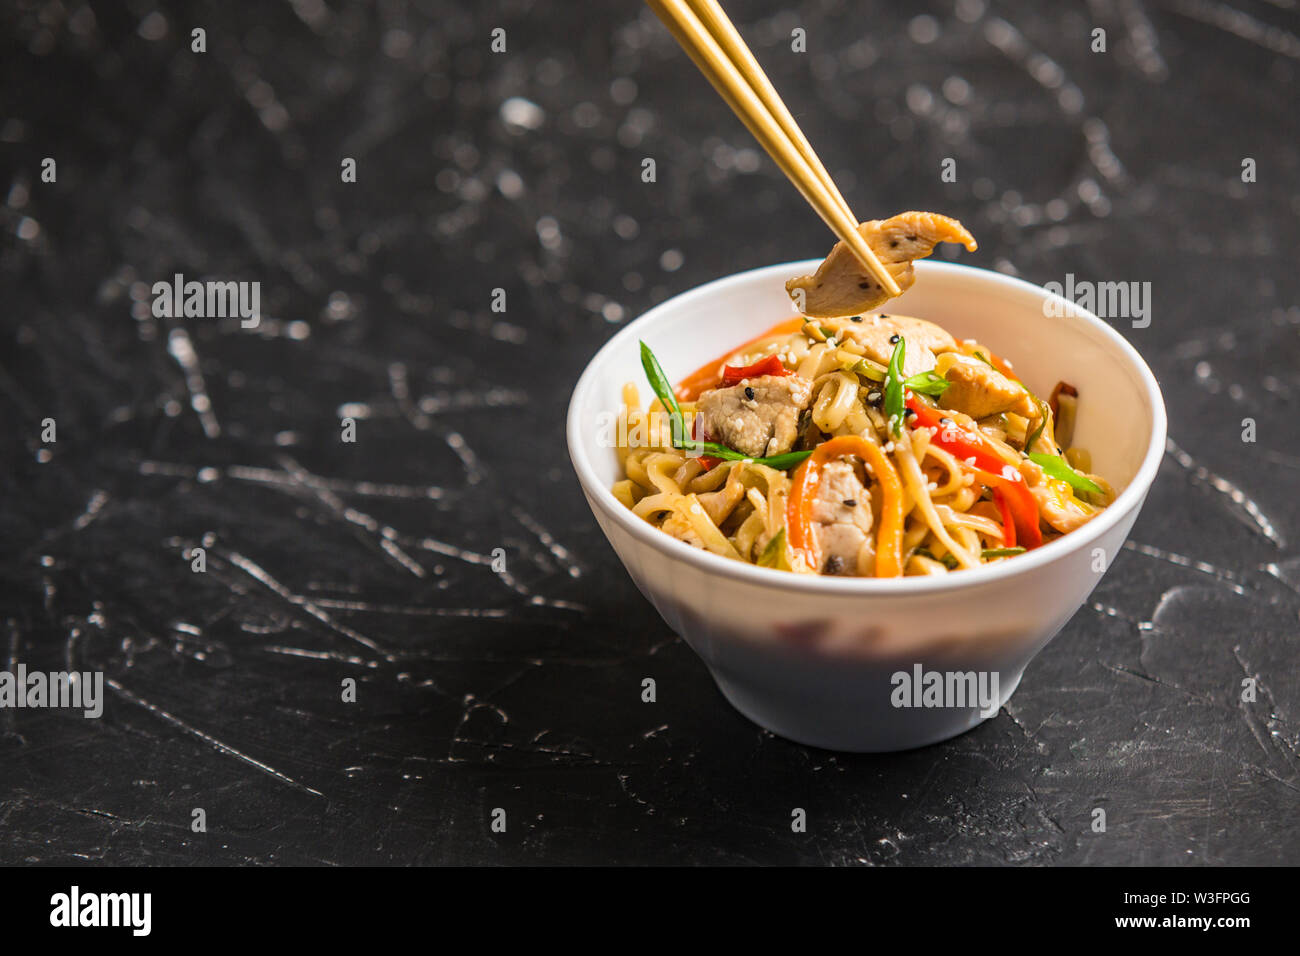 Chinese noodles in a Cup with chicken and vegetables with sticks. Wok food from the restaurant on a dark background from a side view. - Stock Image